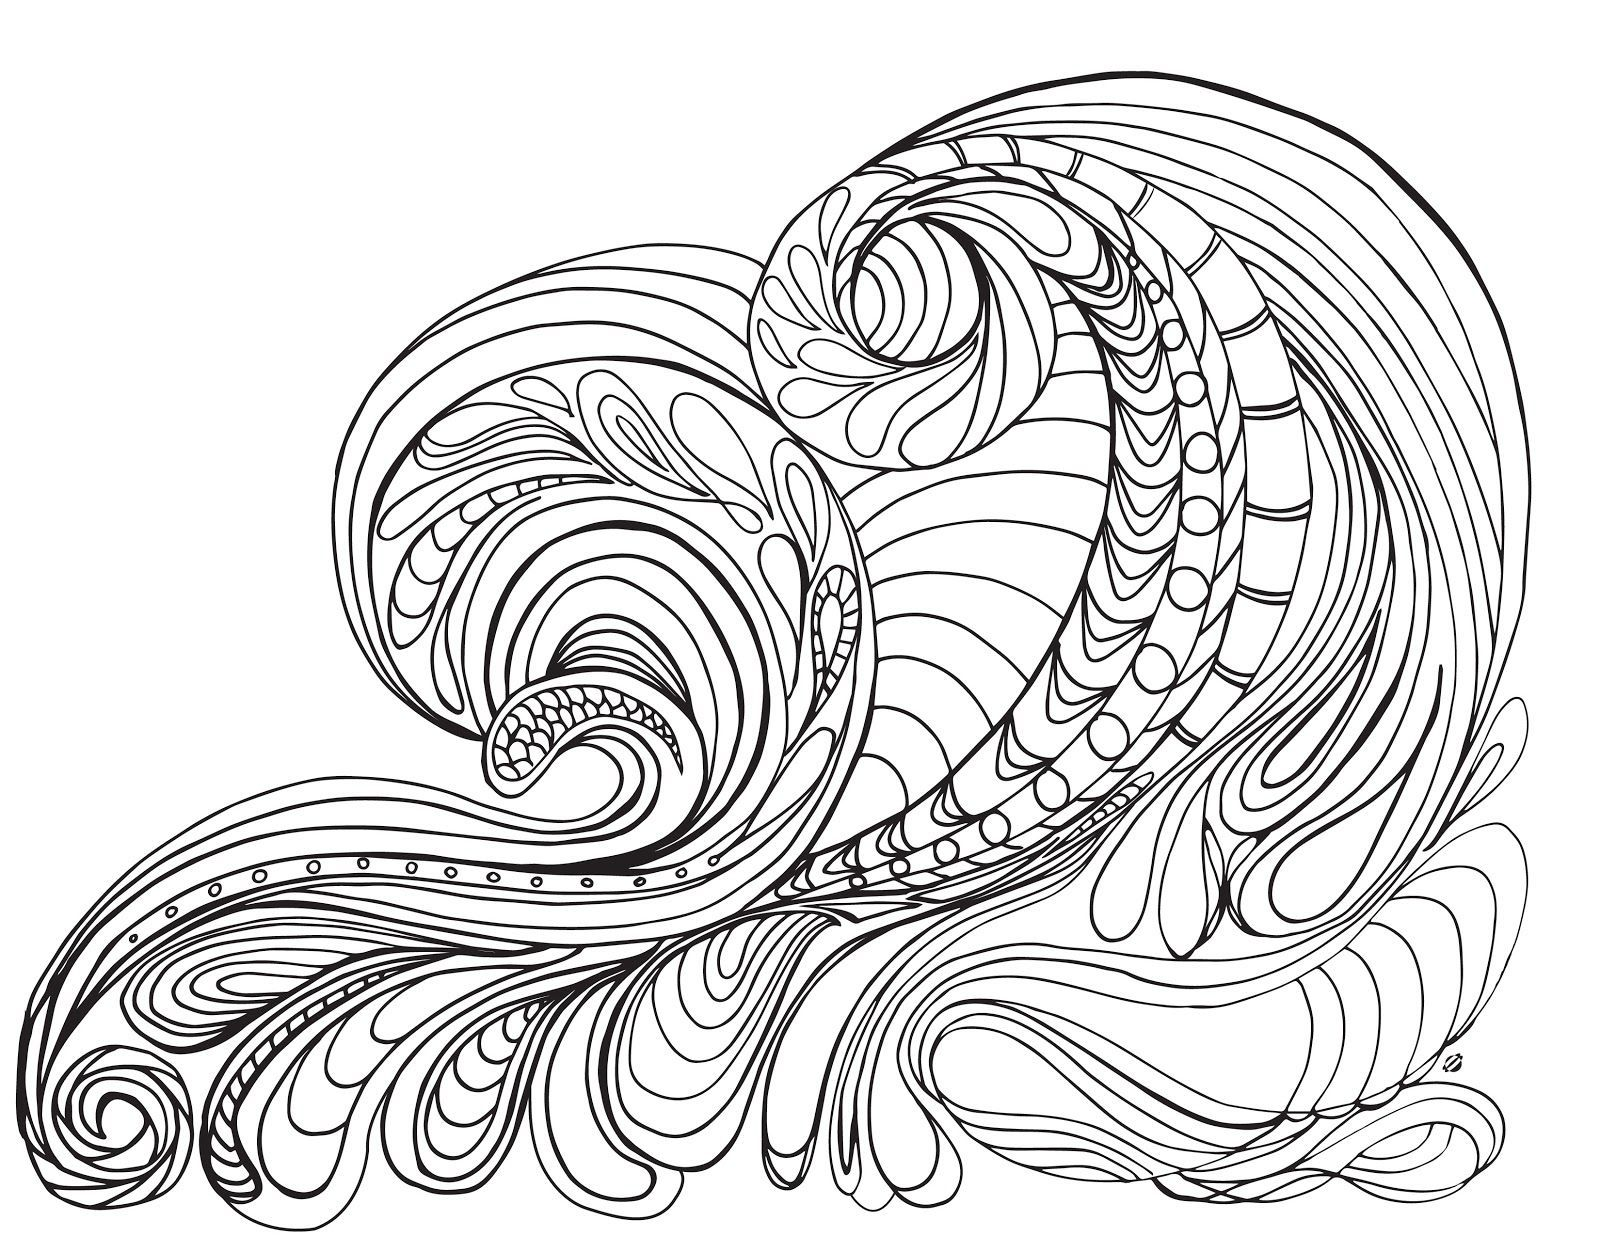 Download Or Print This Amazing Coloring Page Coloring Pages Of